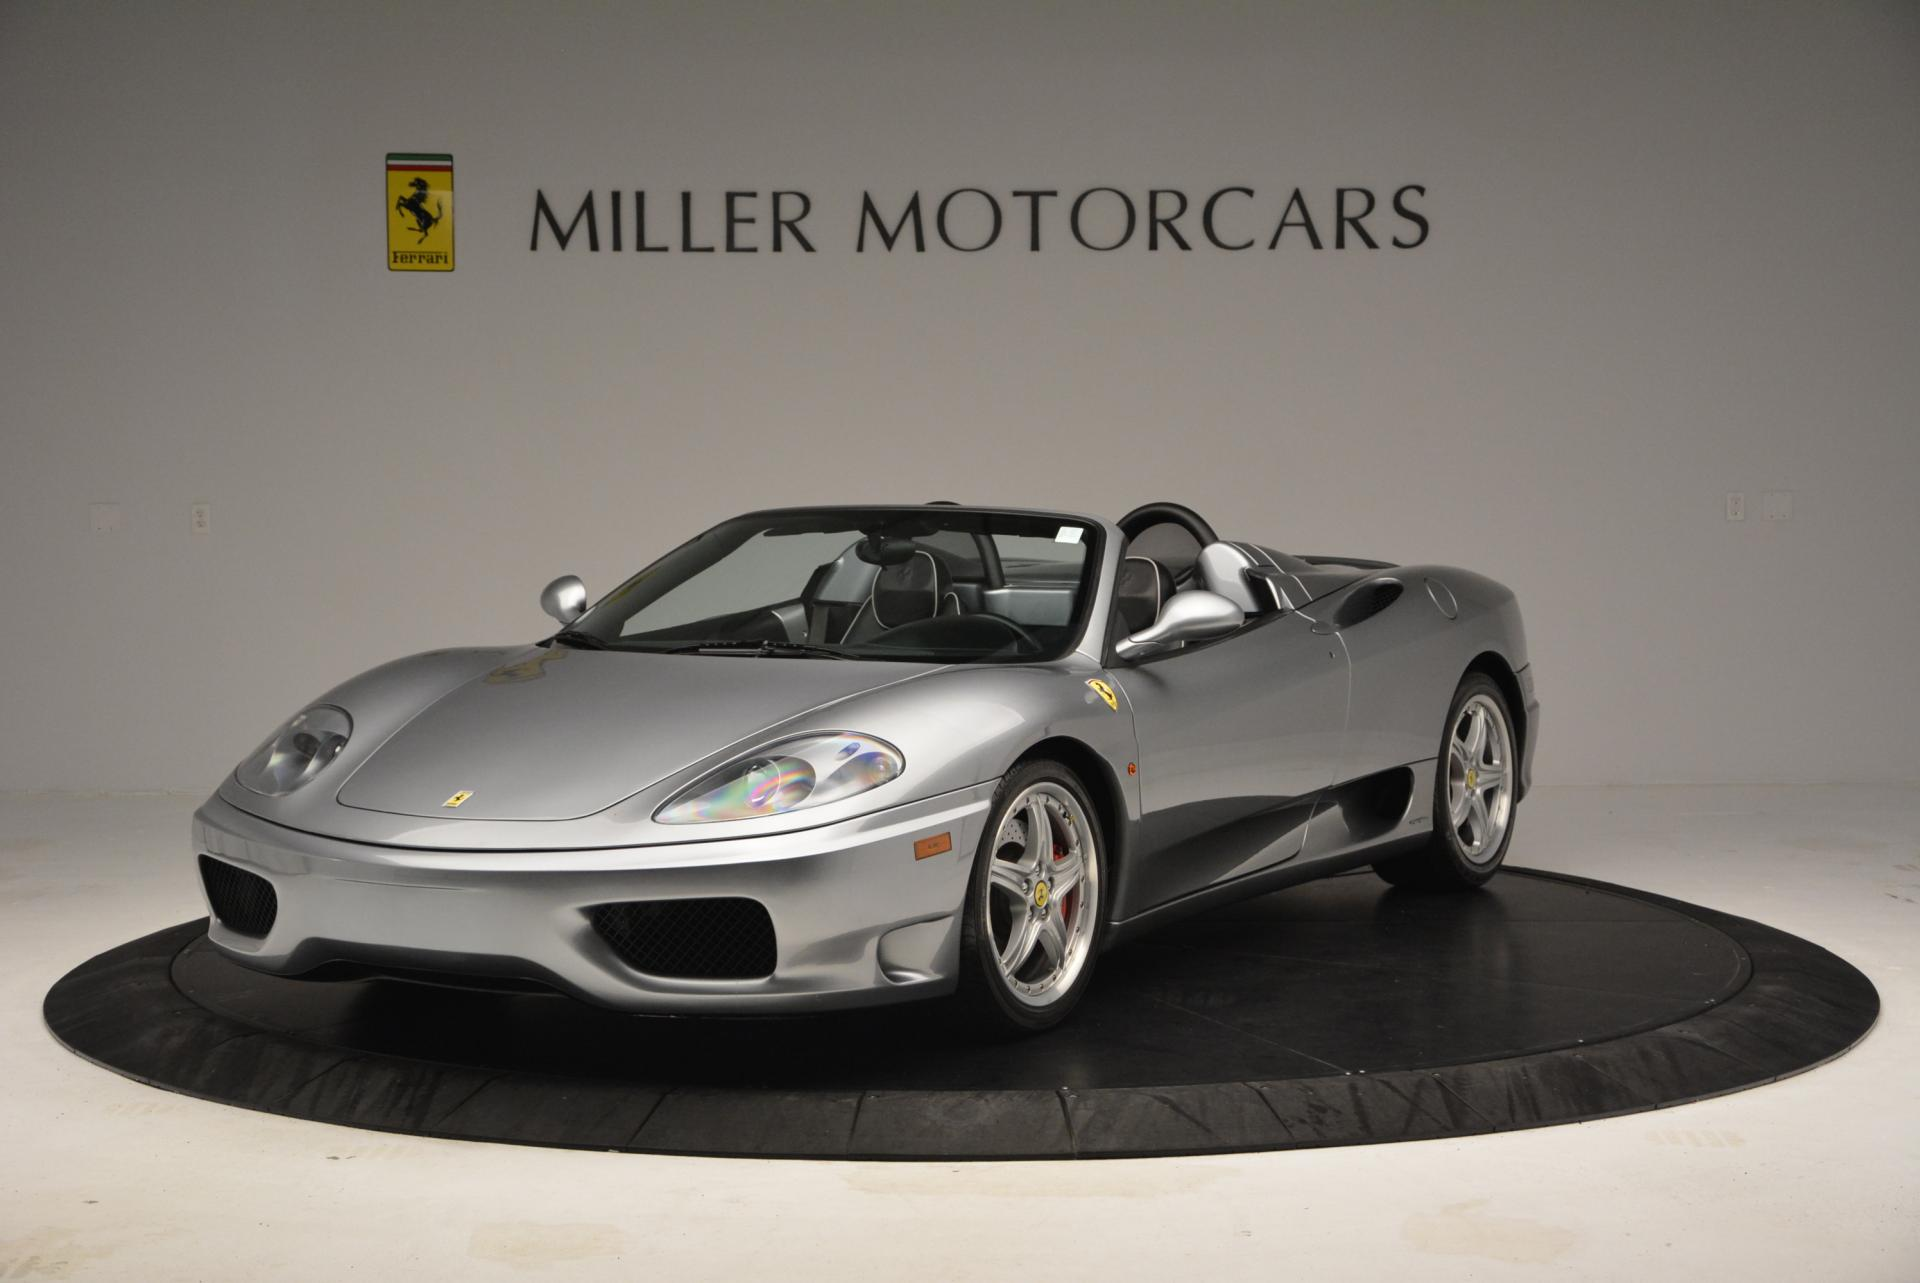 Used 2004 Ferrari 360 Spider 6-Speed Manual for sale Sold at Alfa Romeo of Westport in Westport CT 06880 1